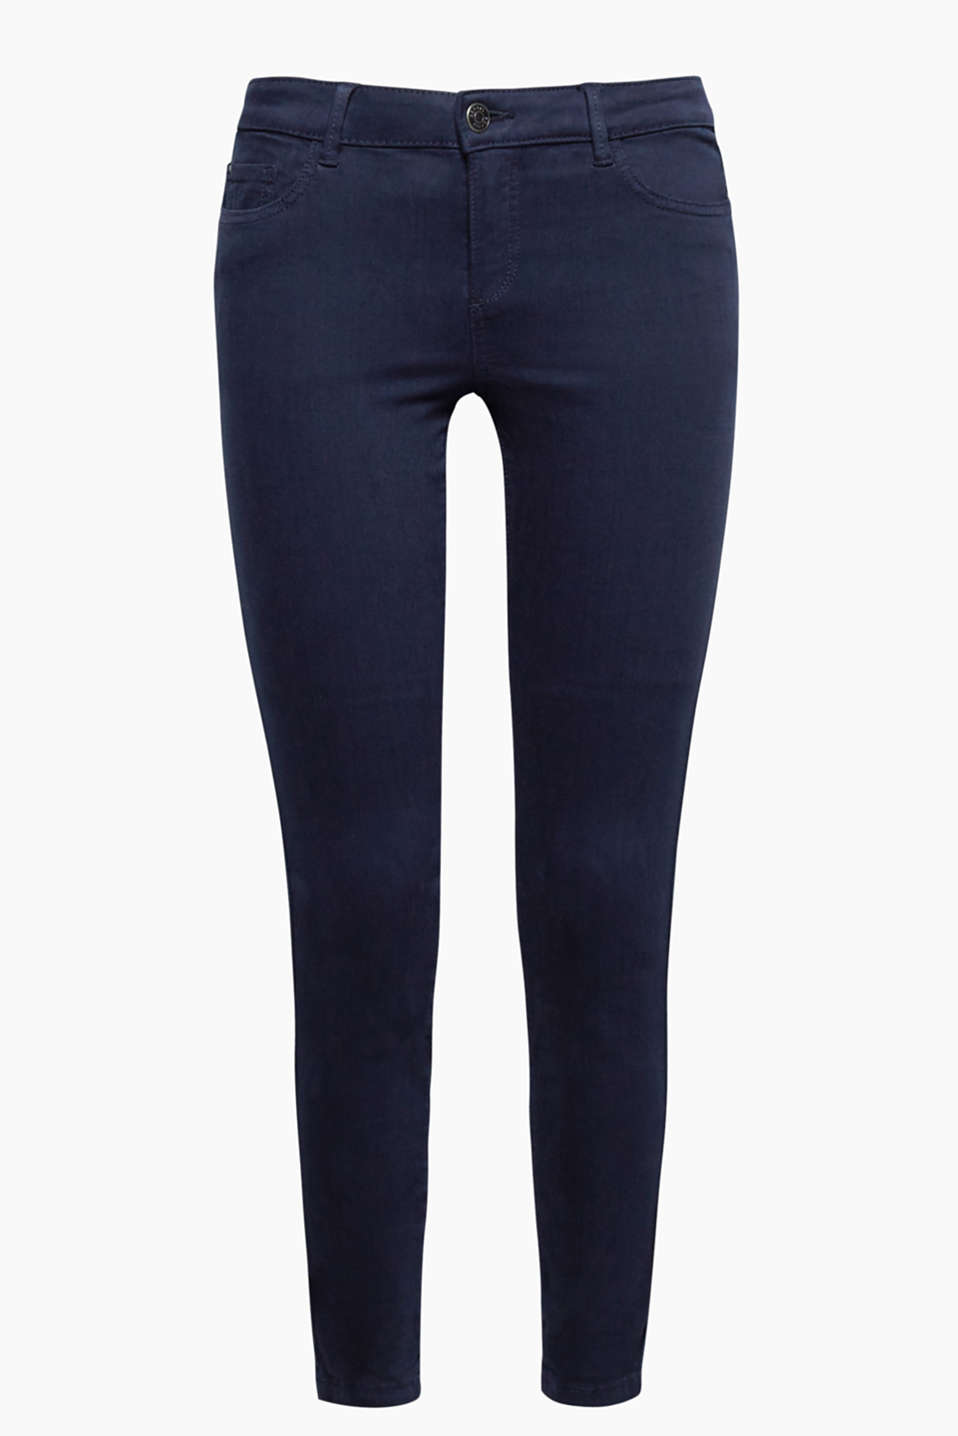 Show off your ankles! Skin-tight, 5 pocket trousers in a fashionably cropped cut.